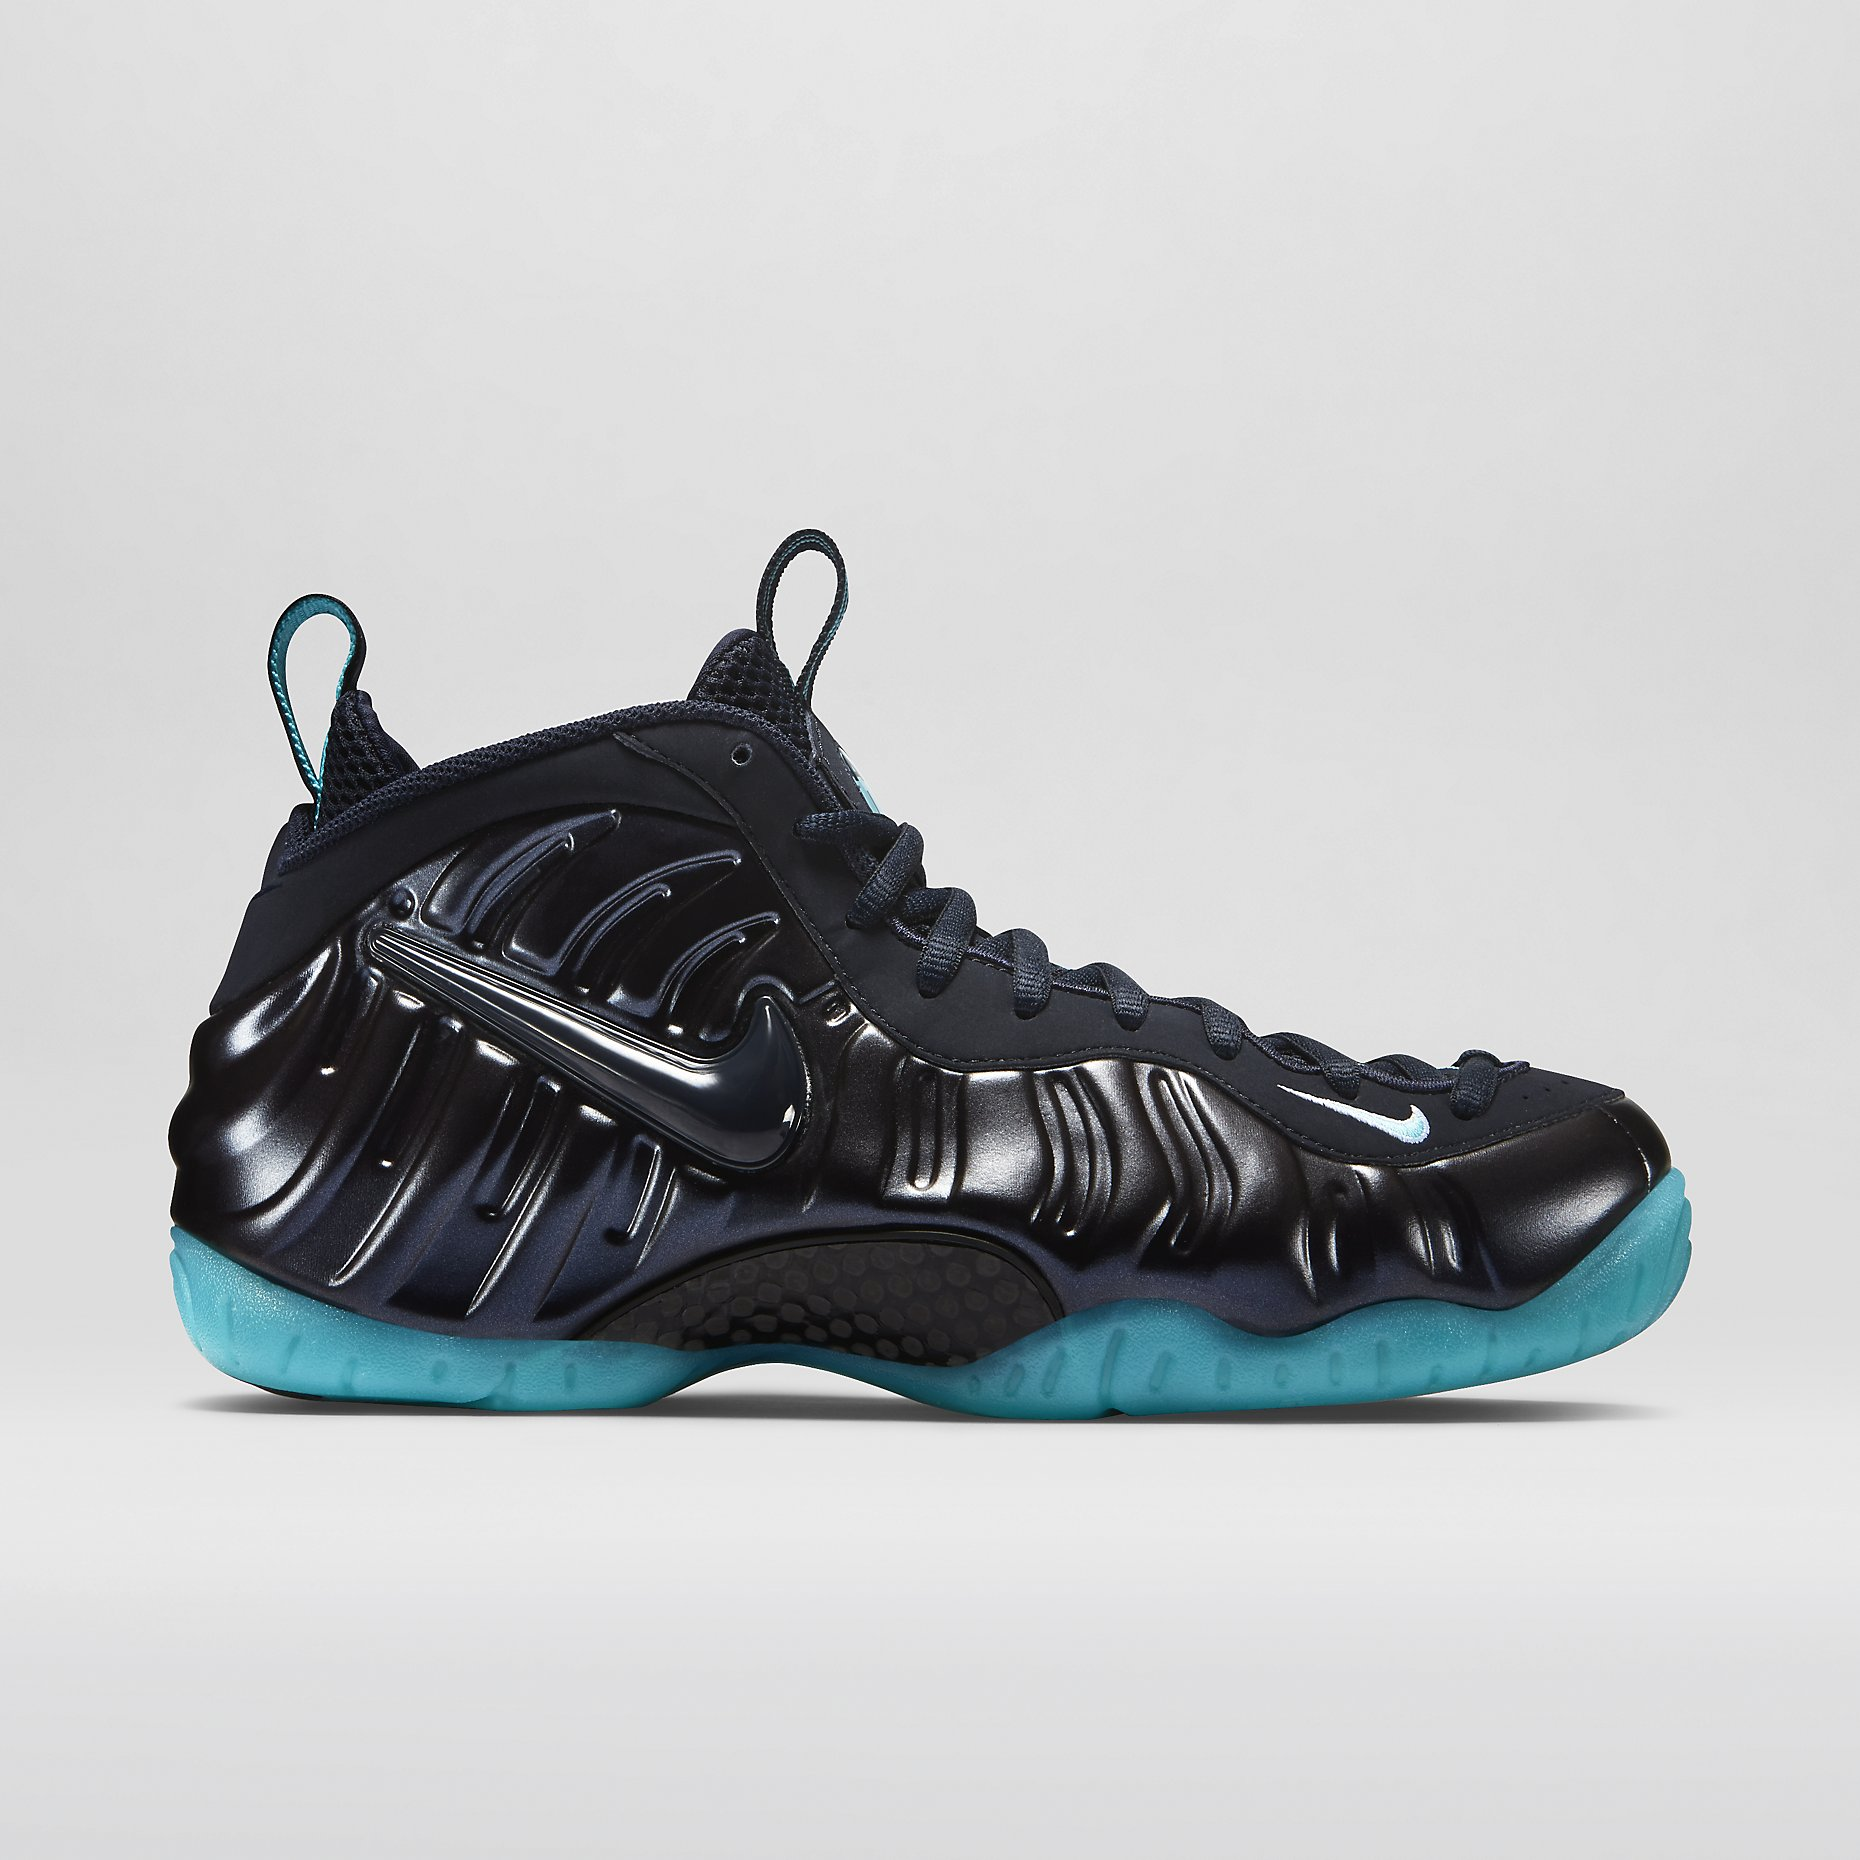 ef2c4042face9 Nike Air Foamposite Pro Color  Dark Obsidian Light Aqua-Dark Obsidian Style   624041-402. Release  02 06 2015. Price   230.00